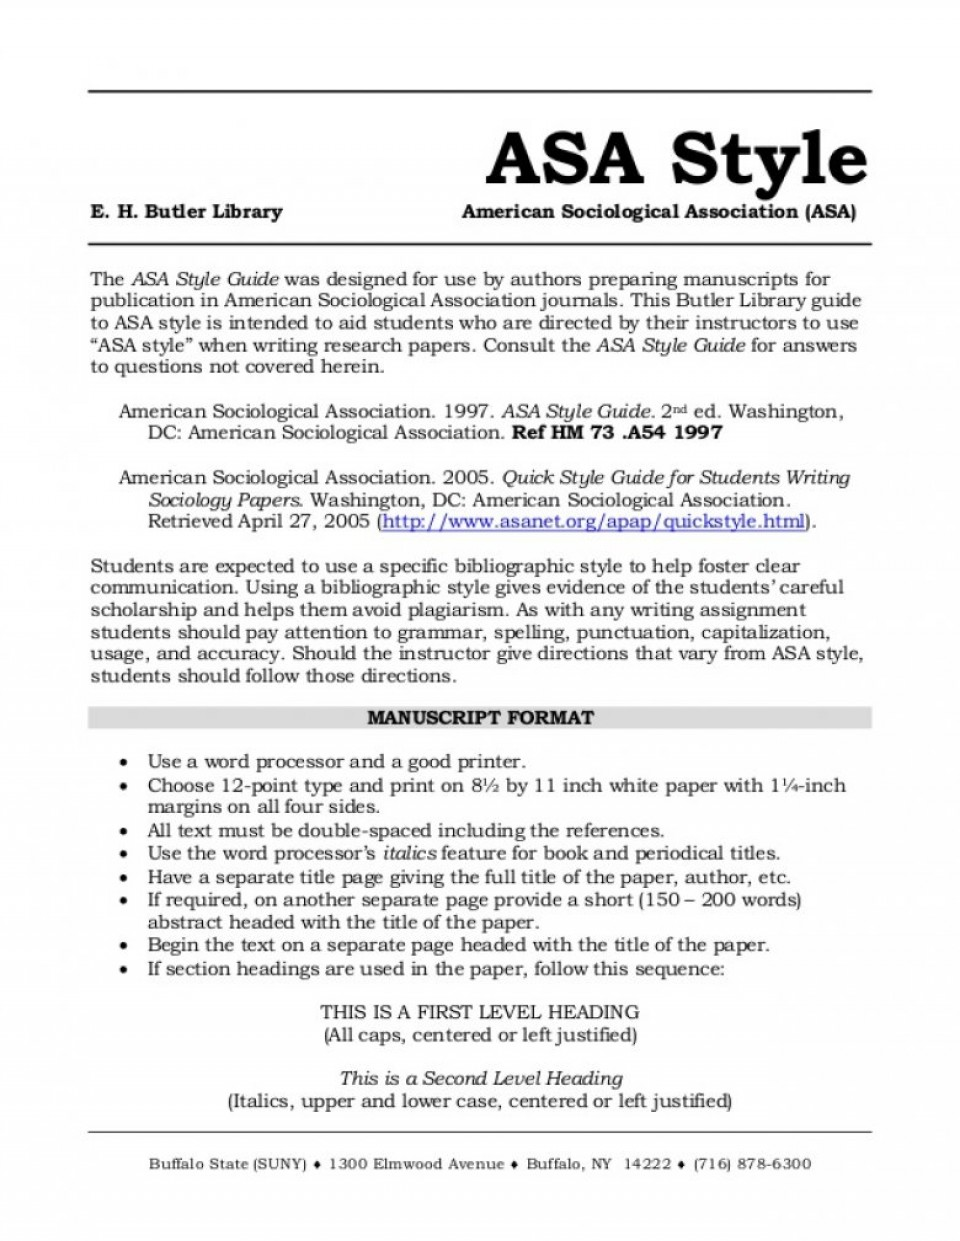 023 Asa Format Papers Essay Remarkable Reference Generator Heading Citation 960